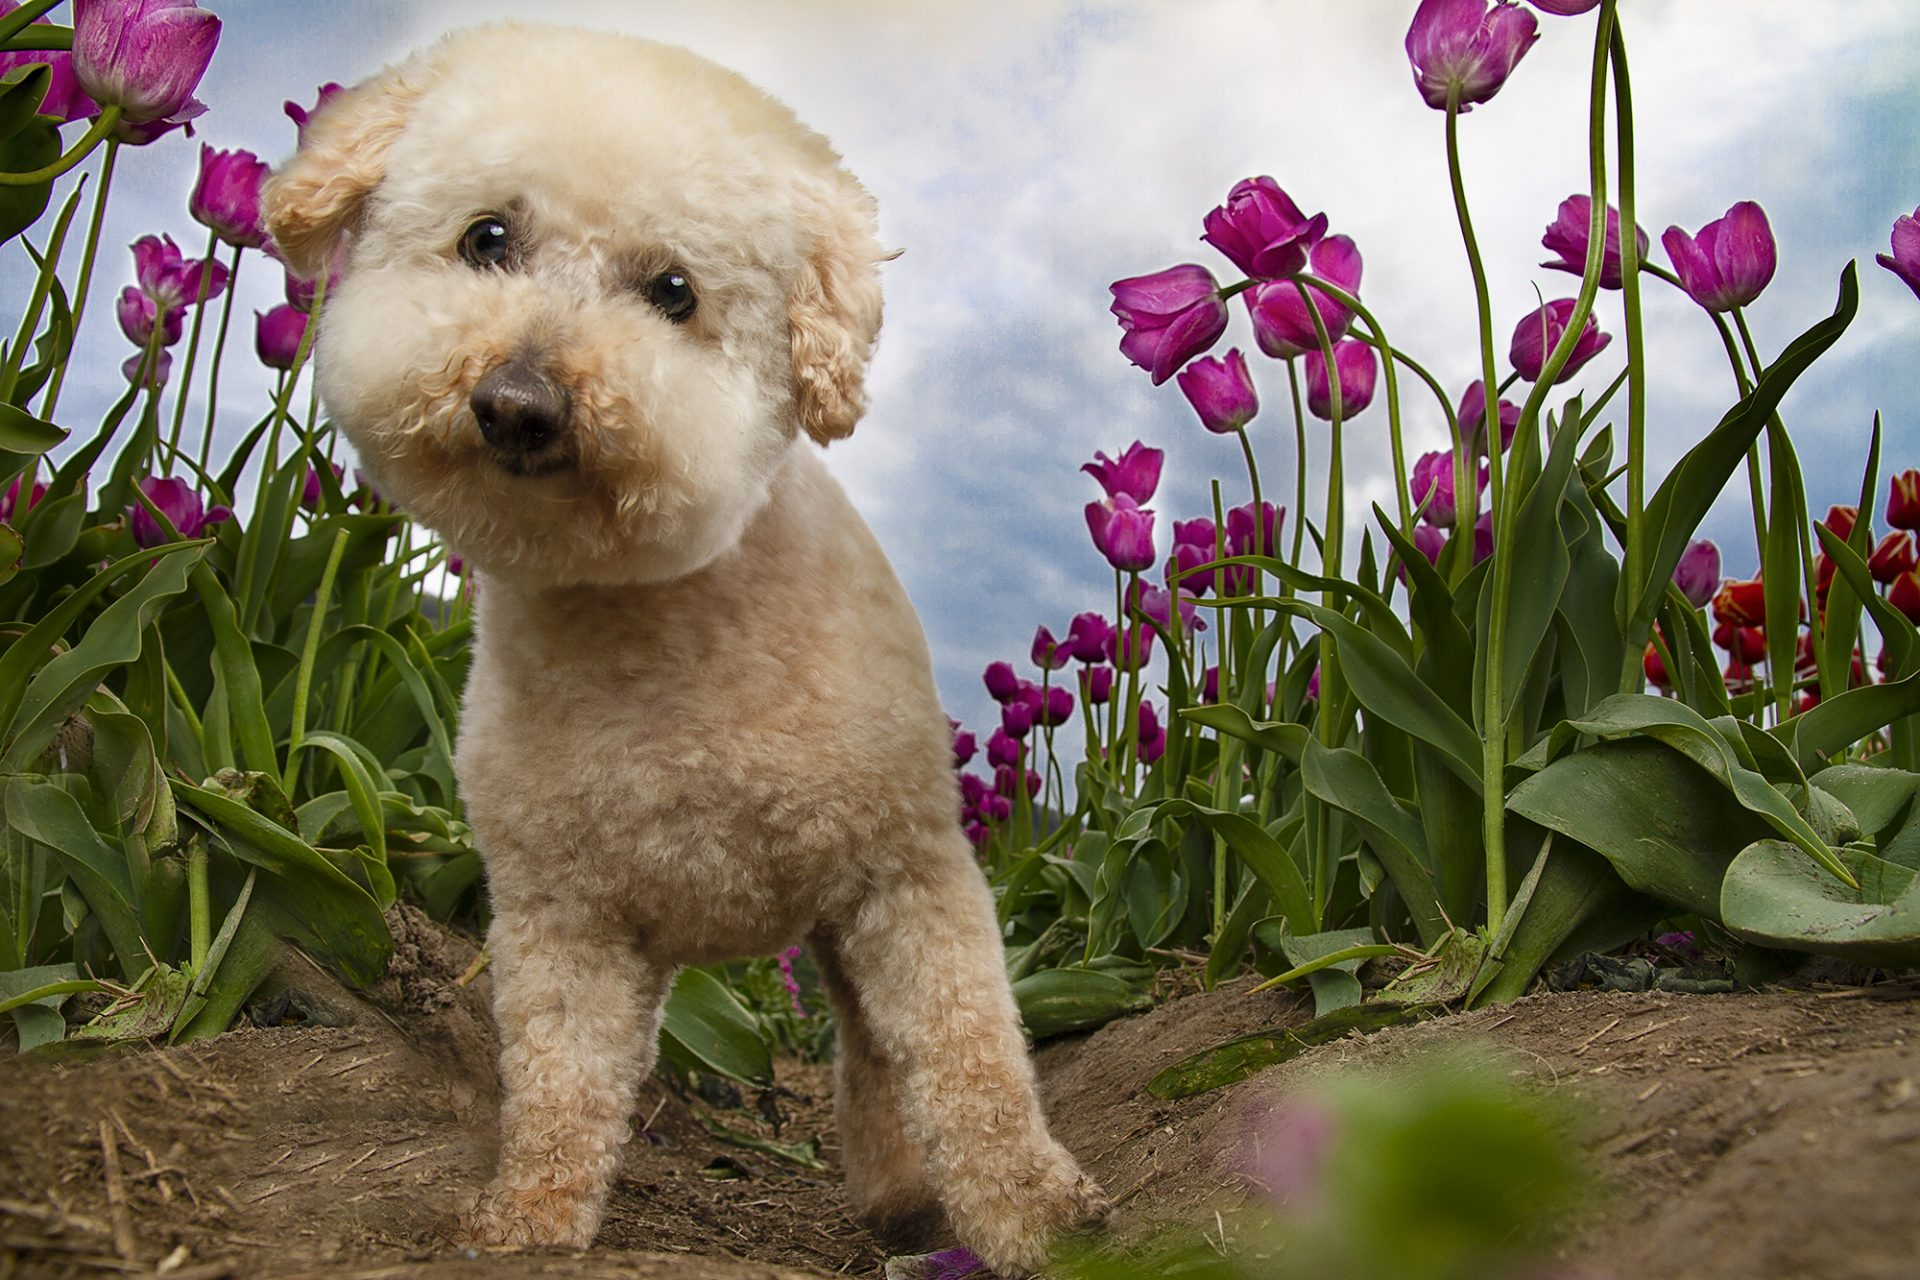 Bichon Frise dog in tulips